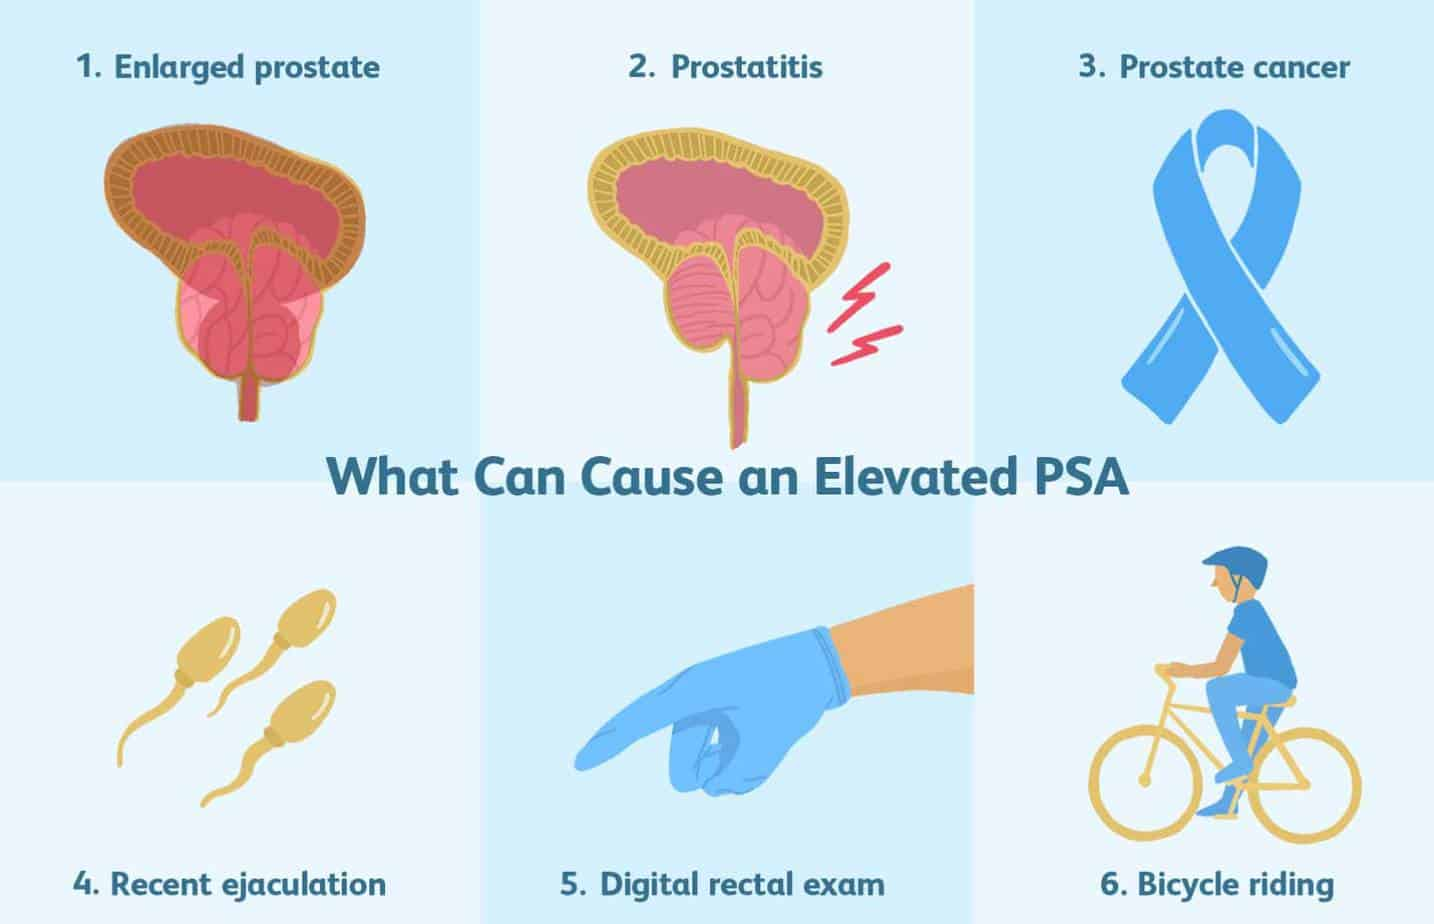 Elevated psa prostate